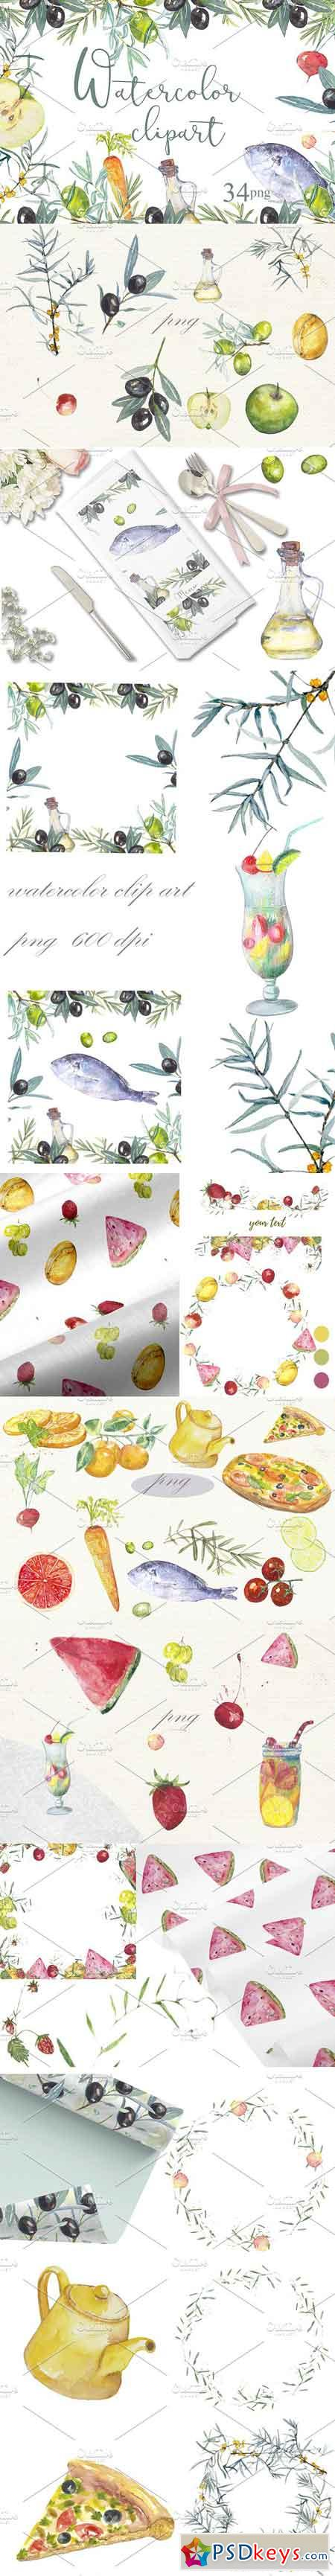 Fruit vegetables food watercolor 2856249